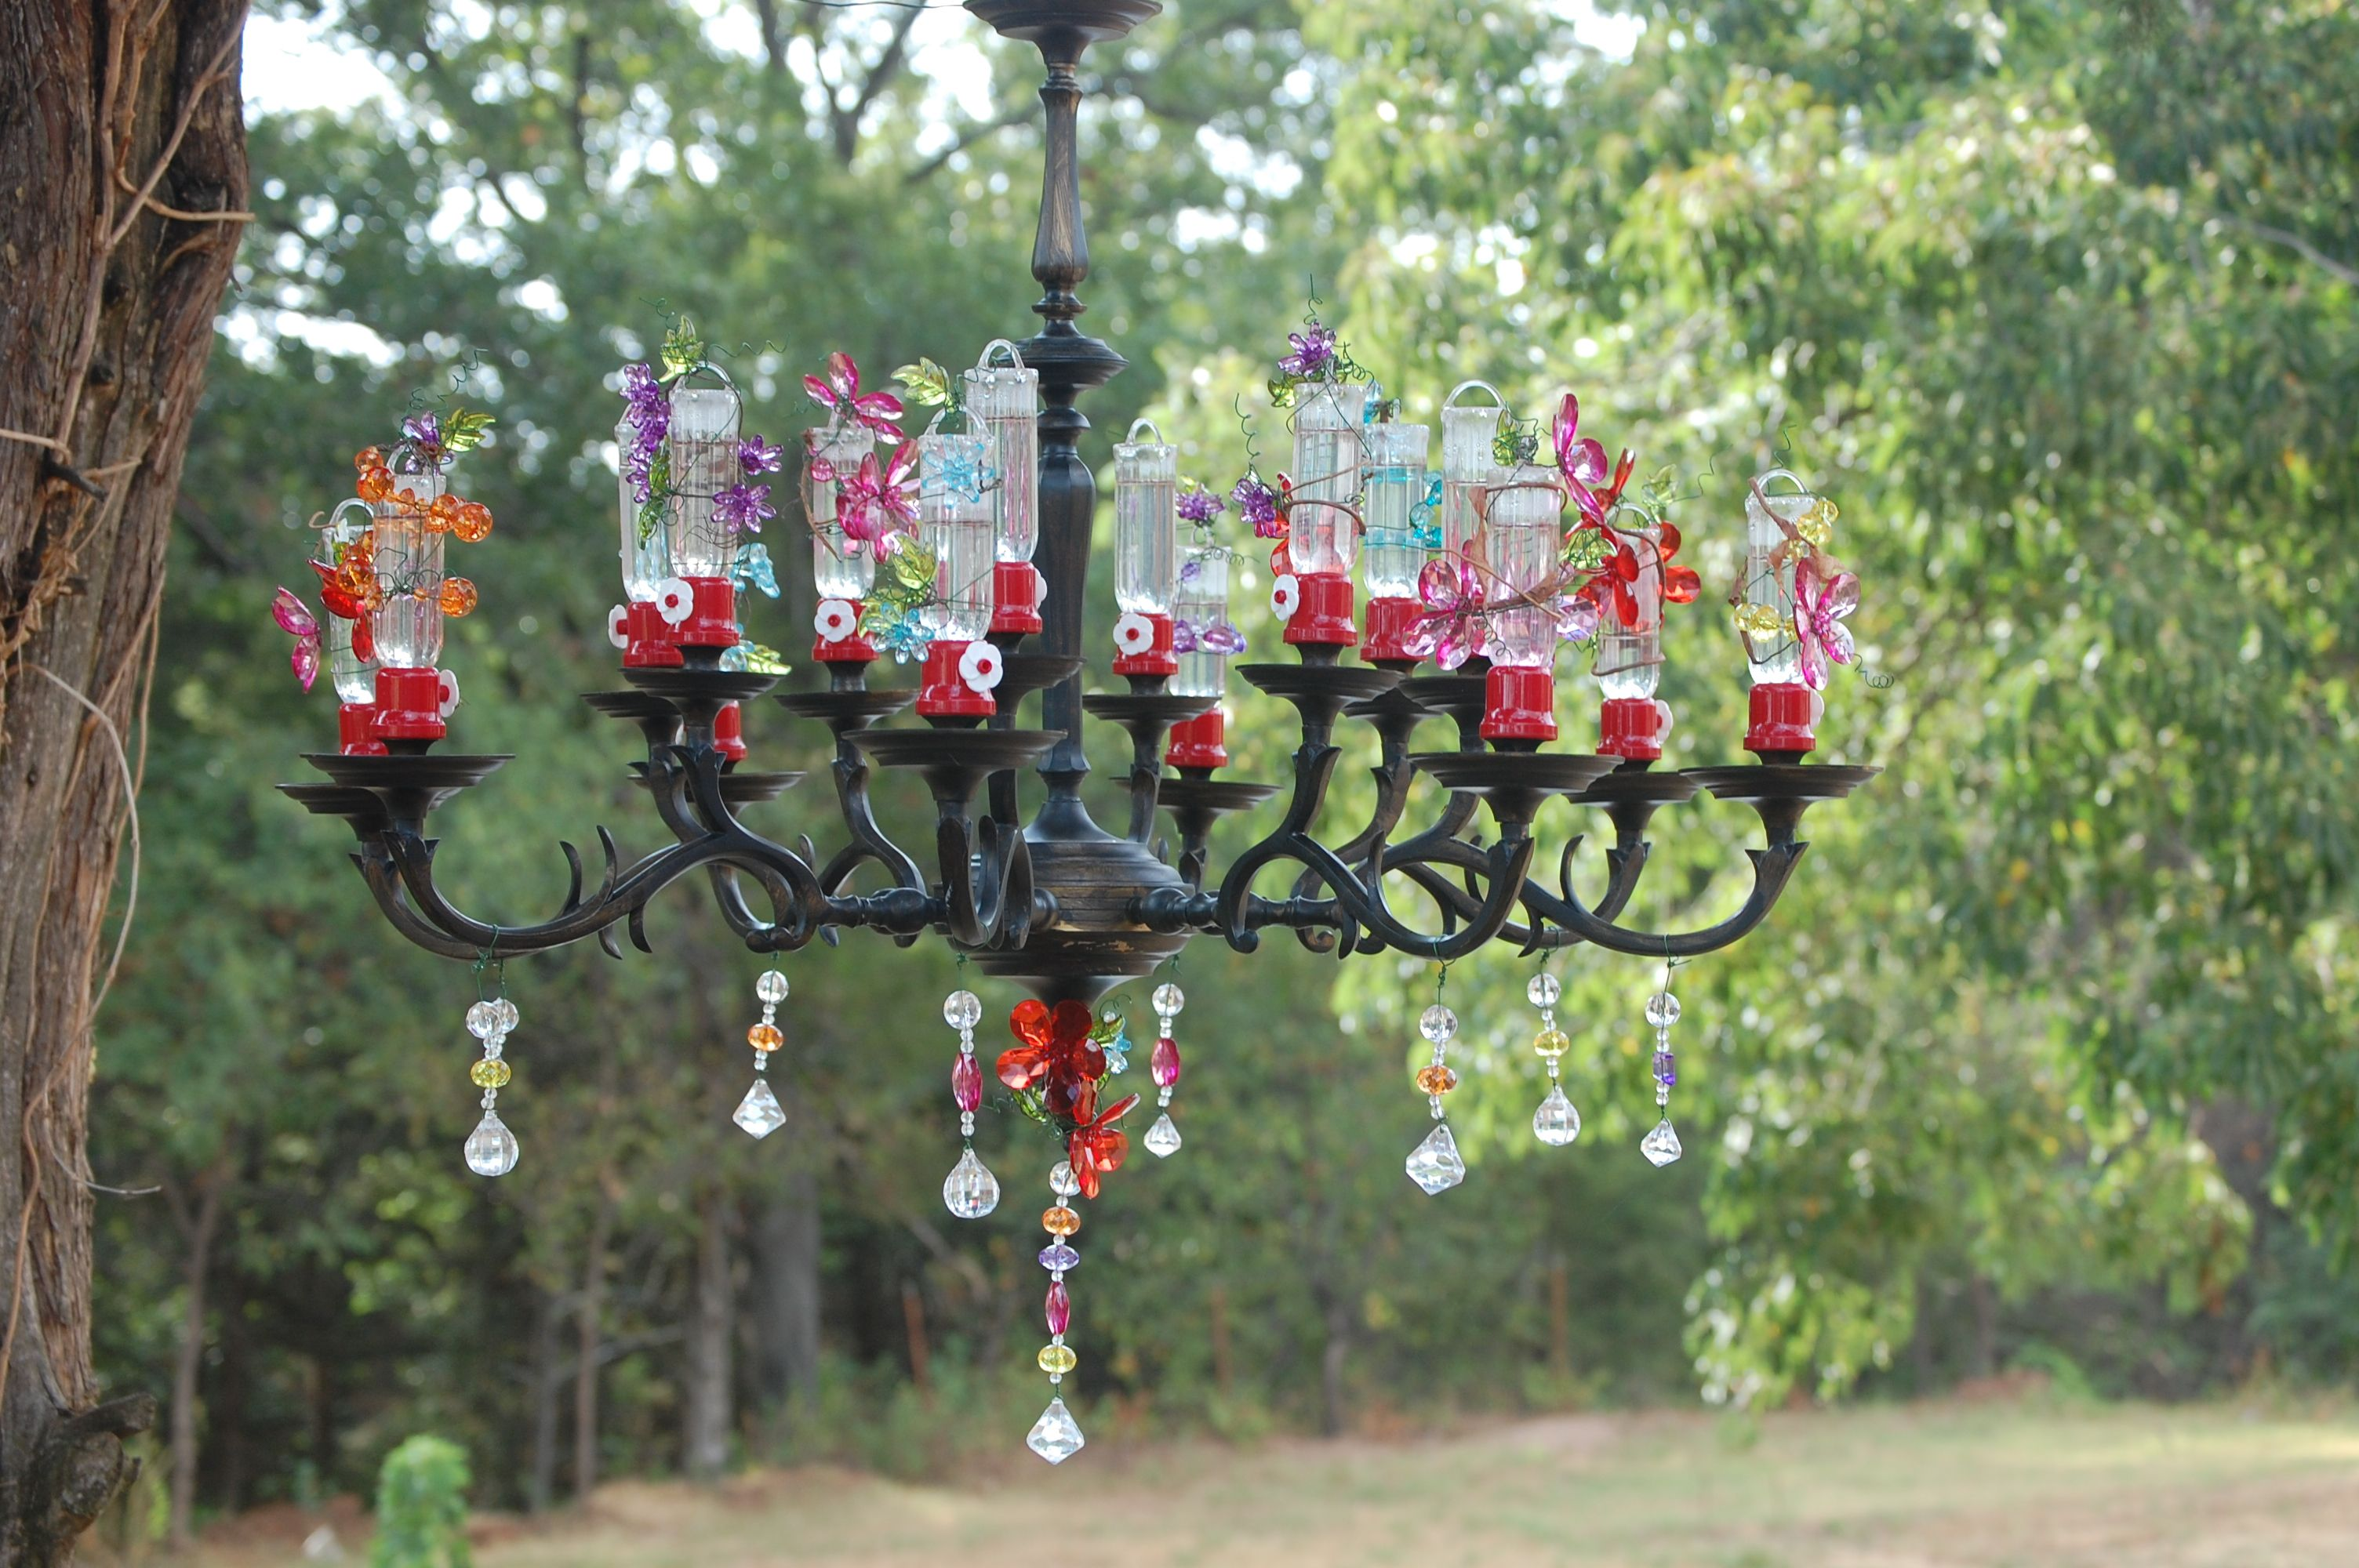 than the blog part more decorative img hummingbird ever garden habitat feeder amazing tour thing coolest yard feeders in native around hung clusters